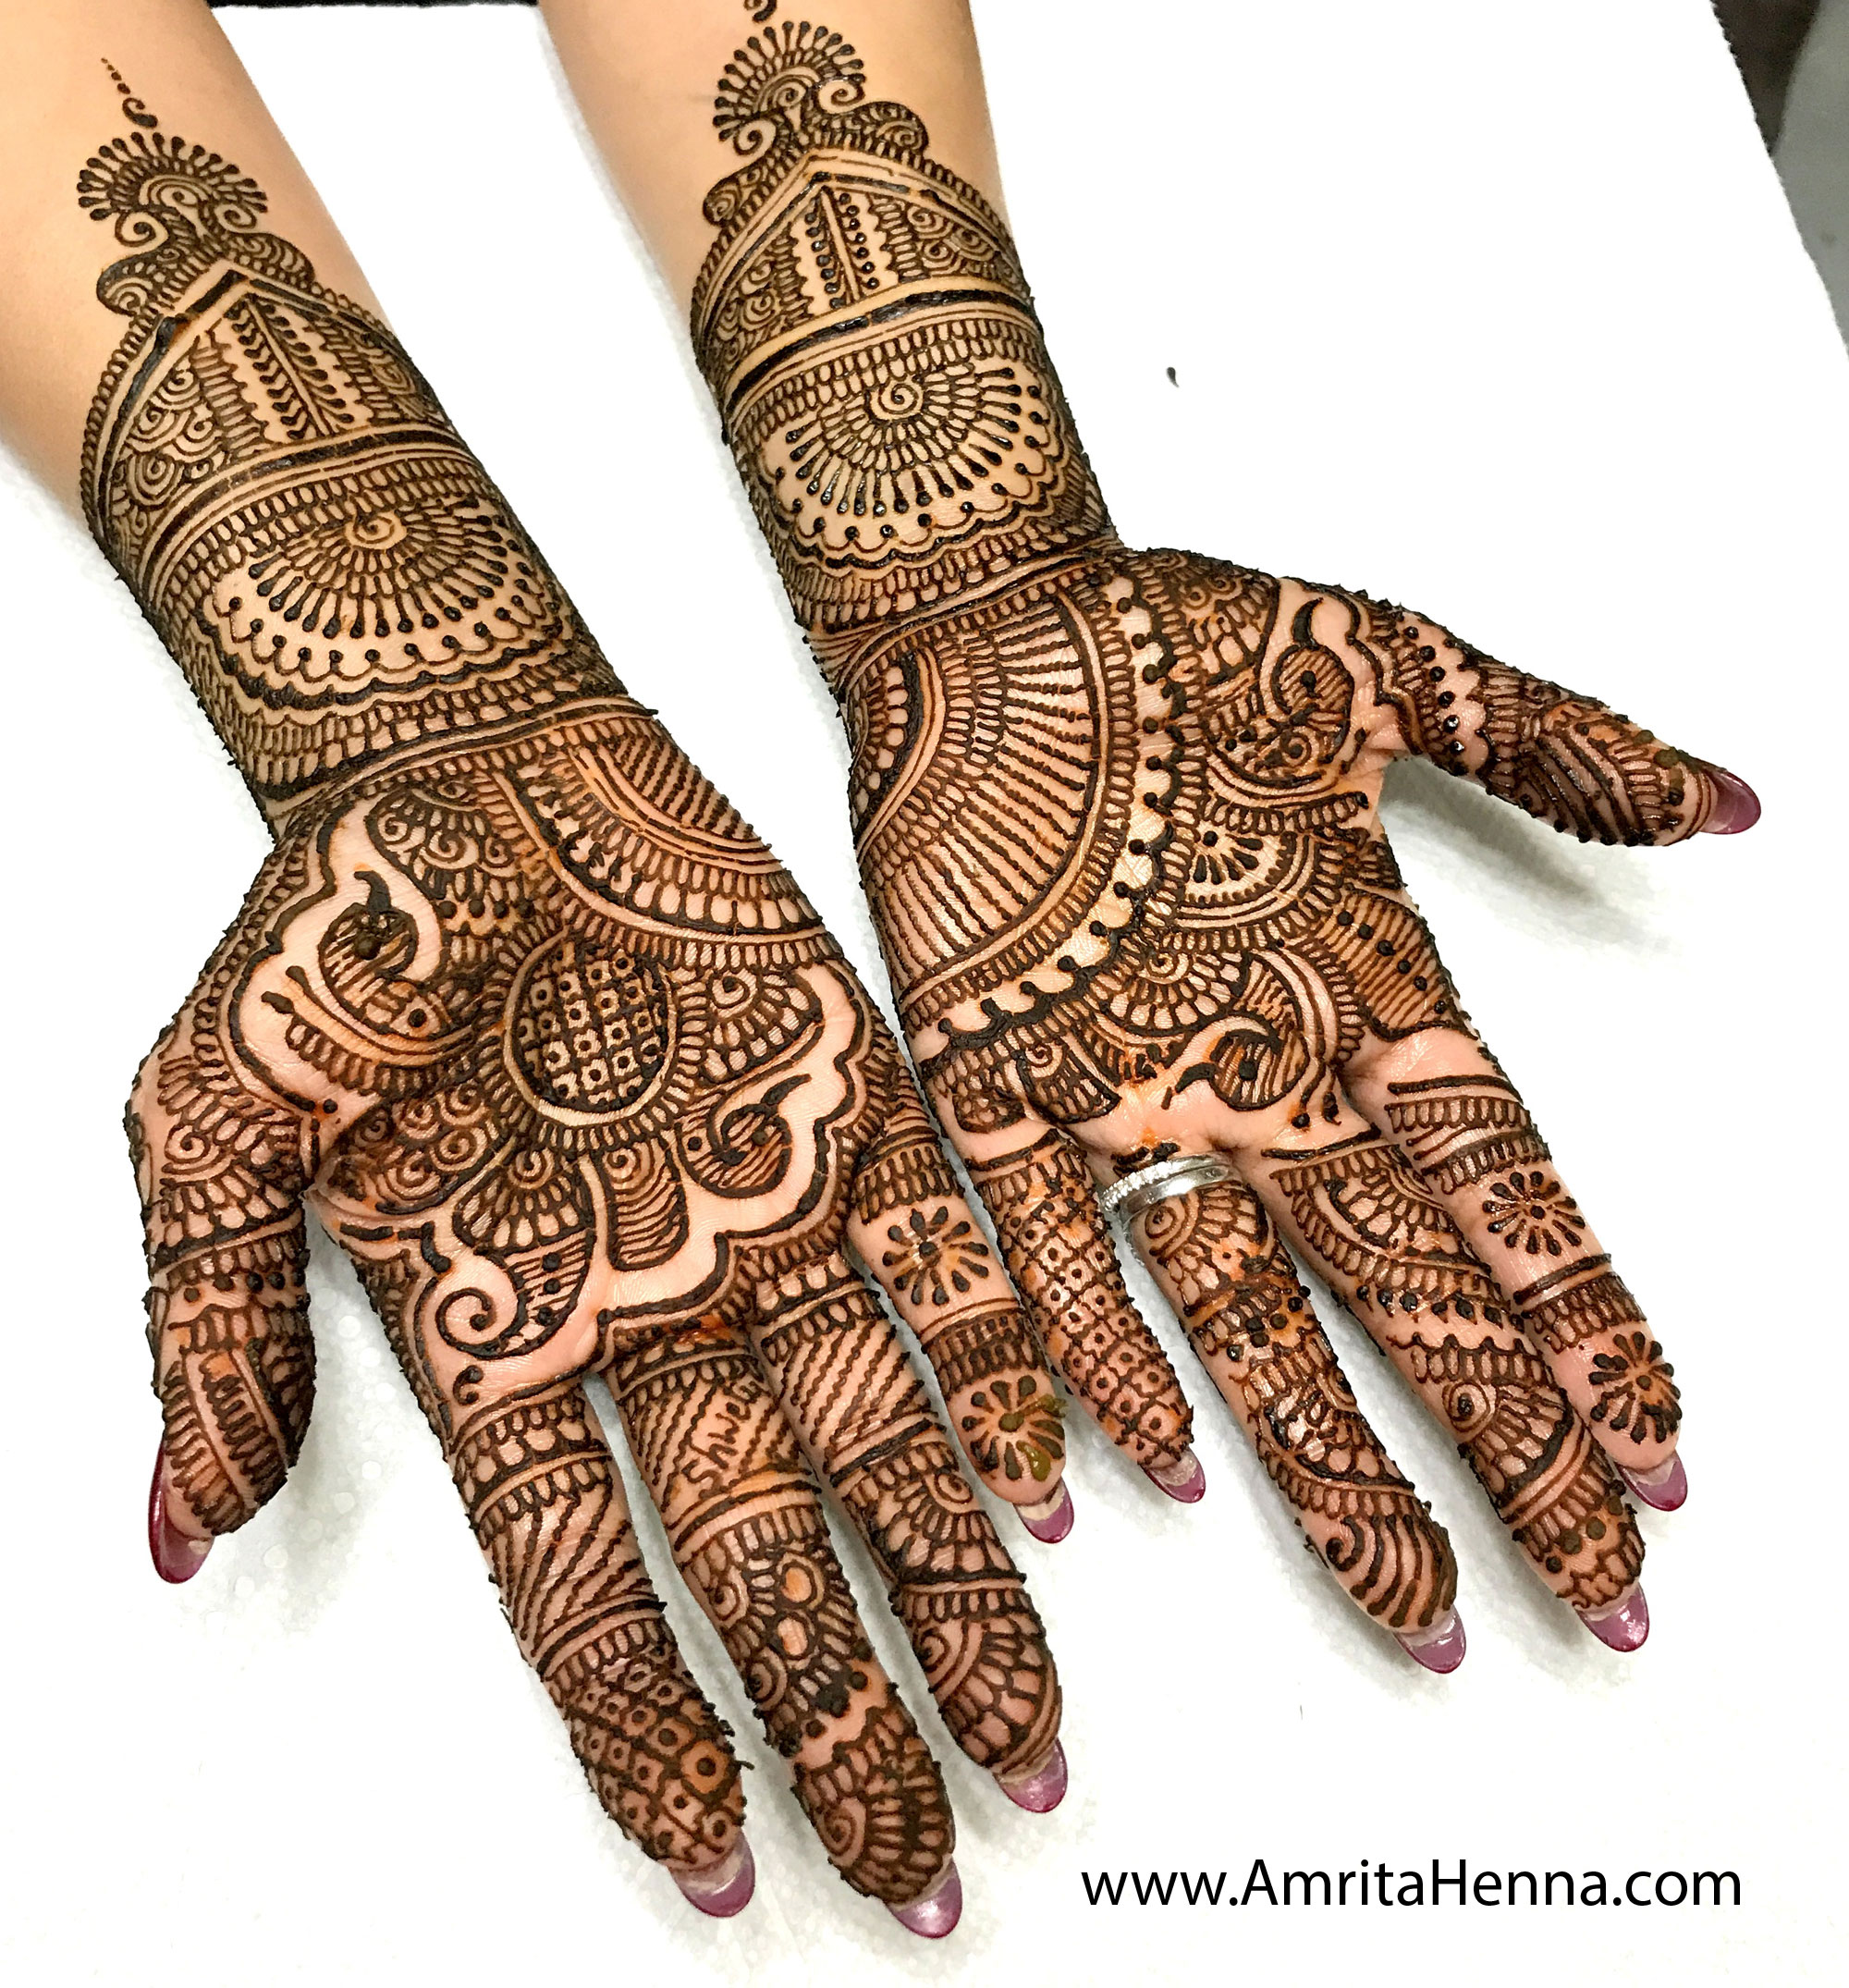 Top 10 Intricate Traditional Indian Bridal Henna Mehndi Designs